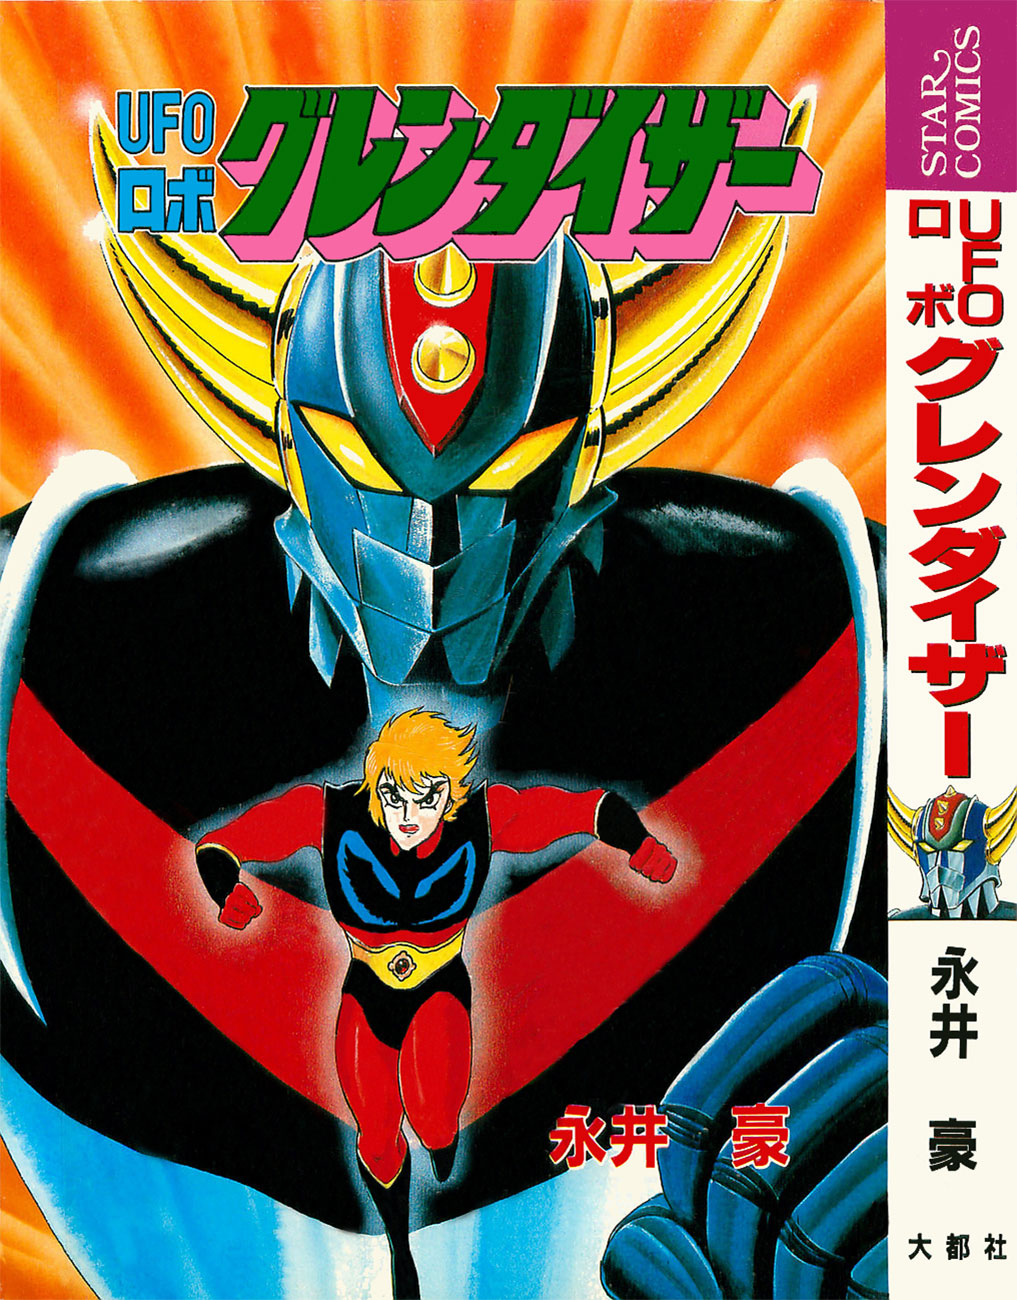 Amazing Ufo Robot Grendizer Pictures & Backgrounds